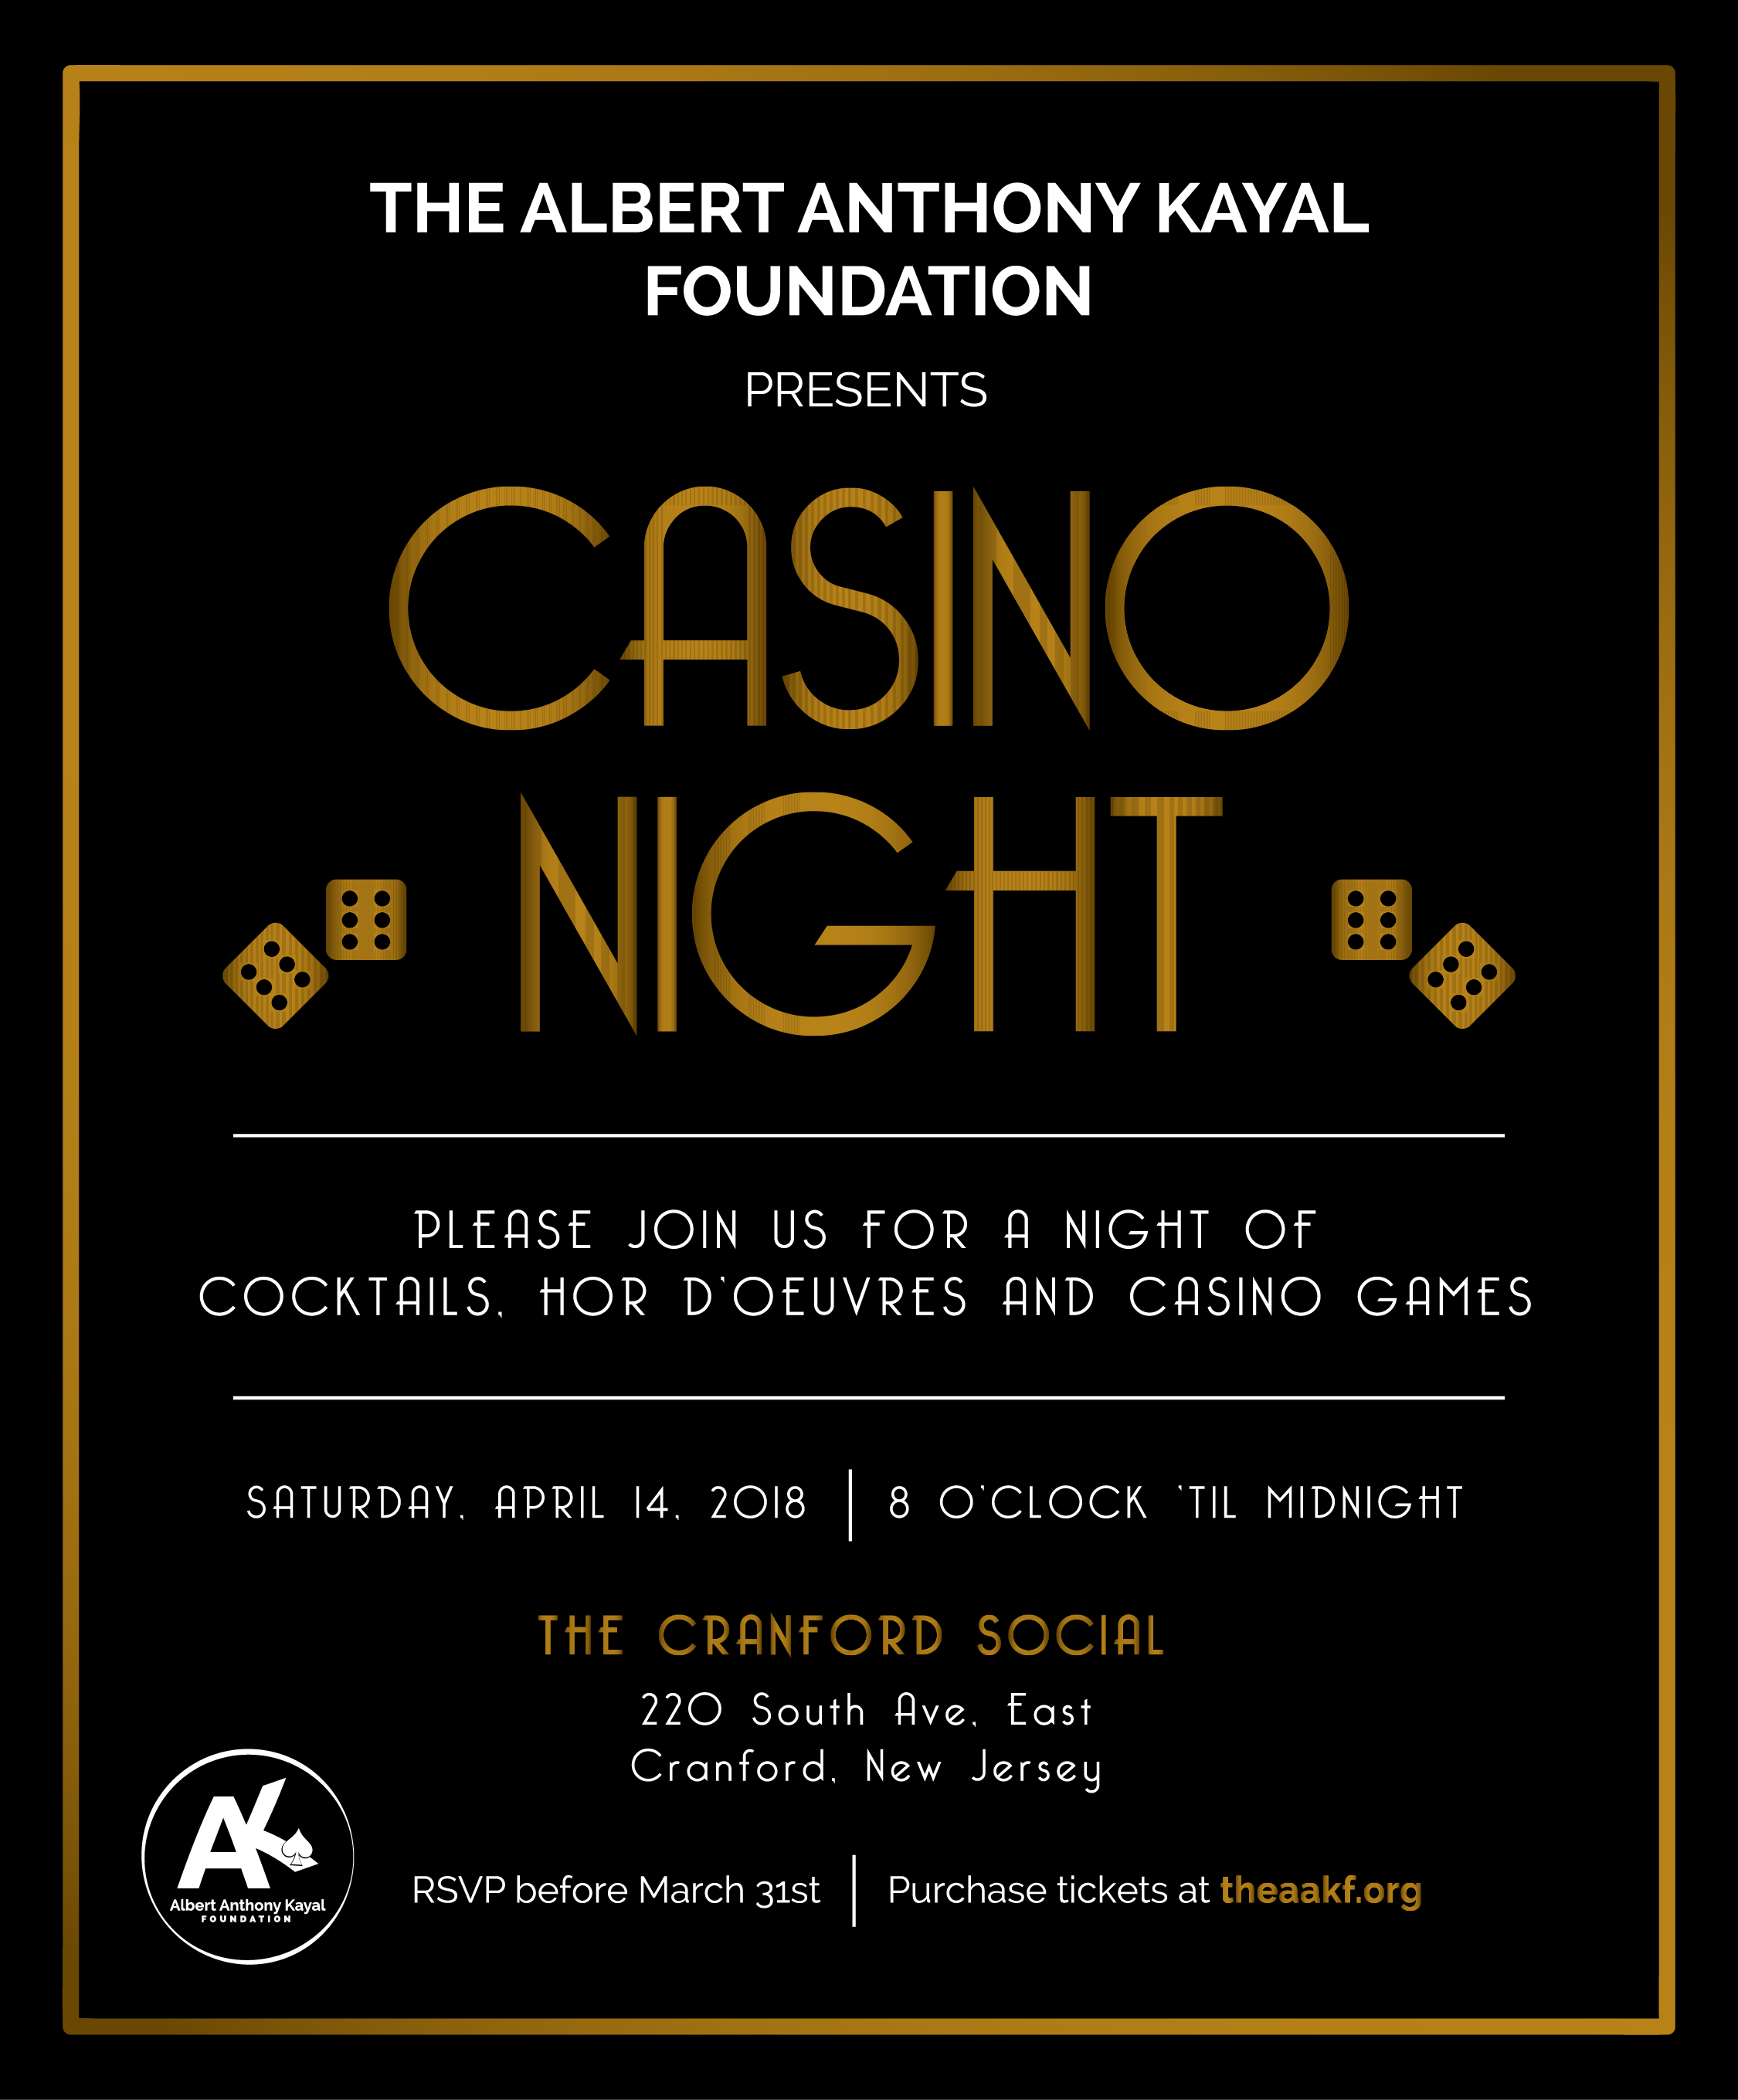 CasinoNight_invite-01.png